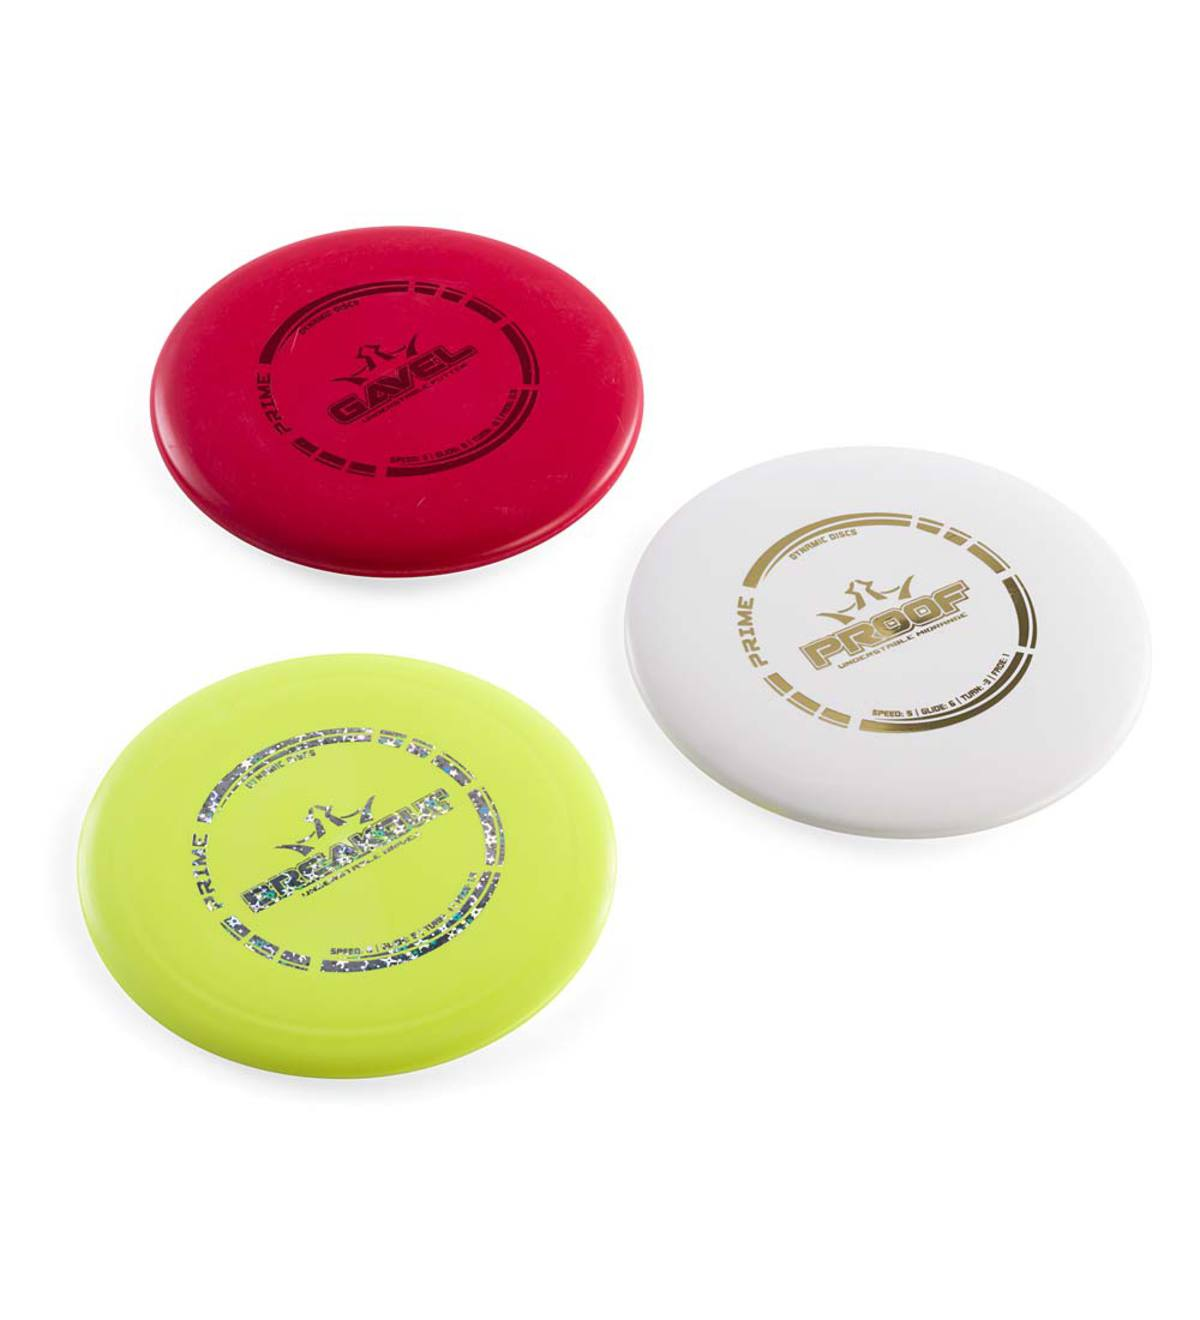 Set of Three Discs for Recruit Disc Golf Game